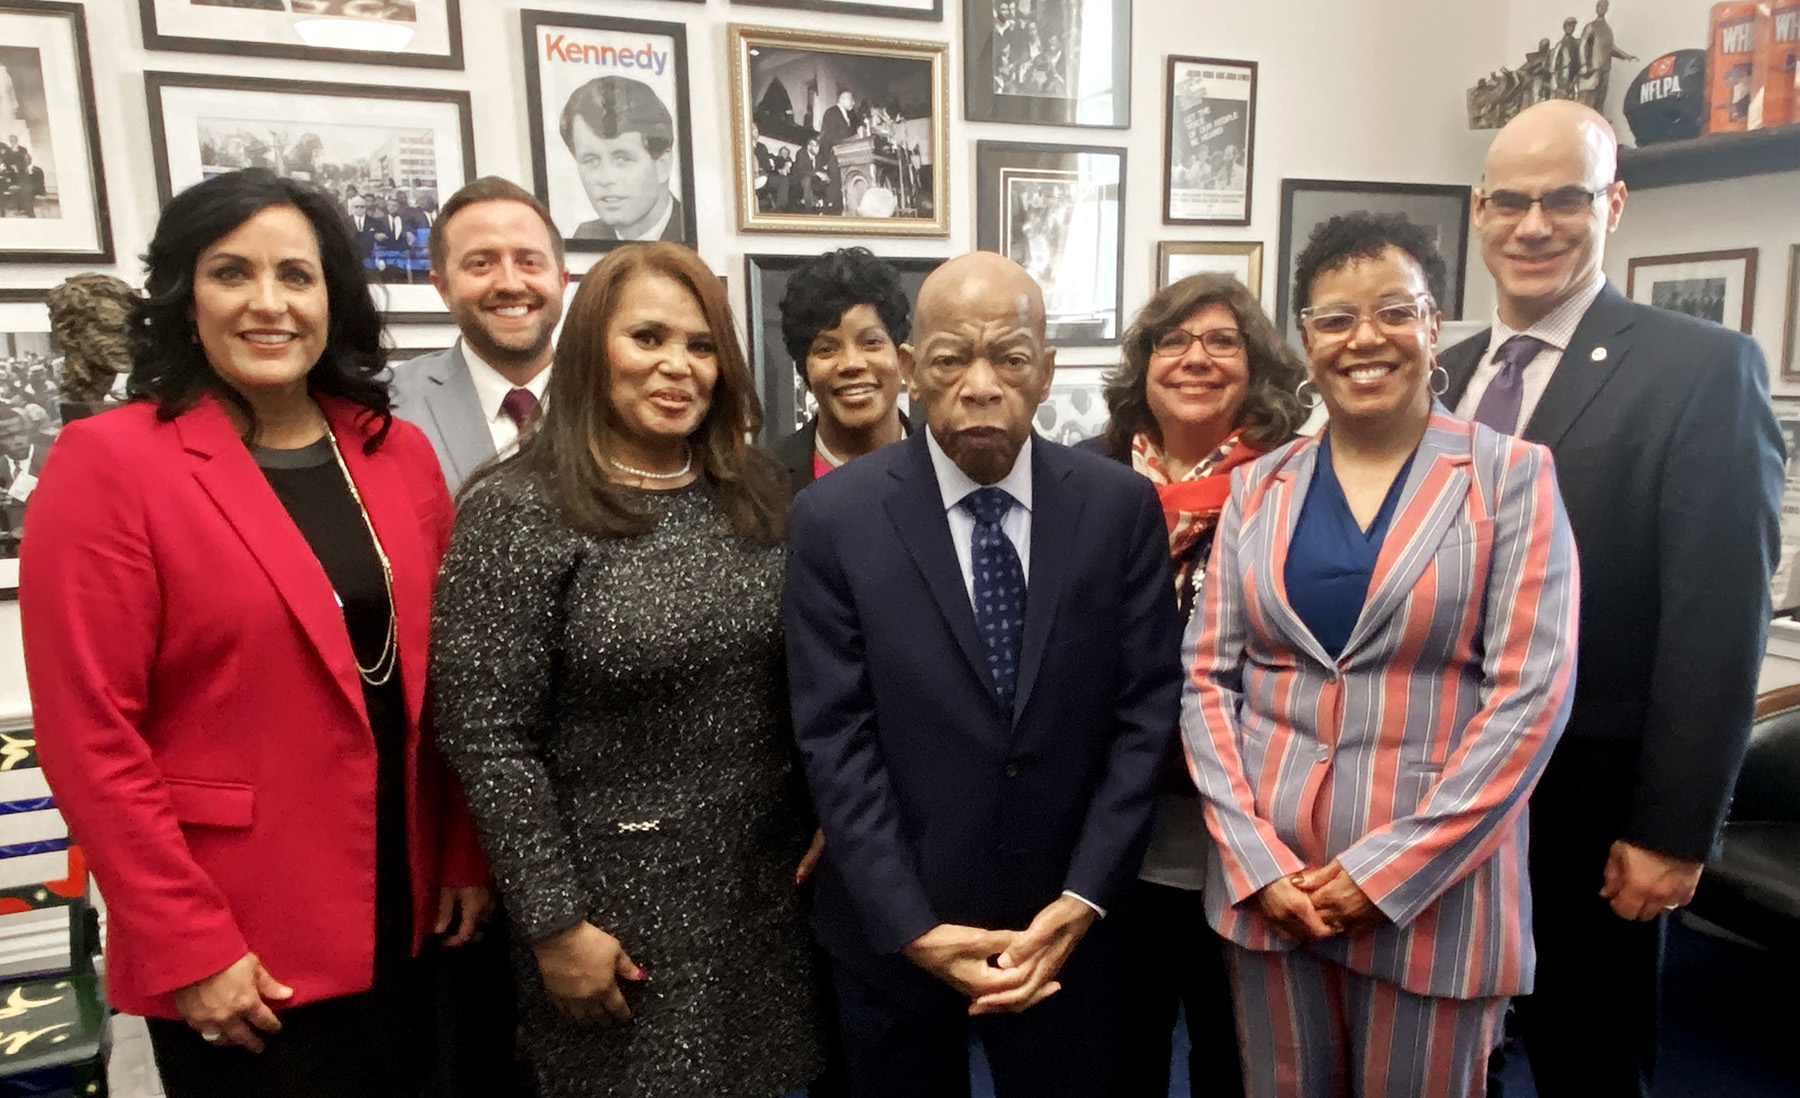 – A Lansing delegation delivers a personal invitation to speak at the 2020 MLK Day luncheon to Rep. John Lewis at his Washington, D.C. office. Pictured front row from left, Nicole Noll-Williams, Elaine Hardy, Lewis and Kelli Ellsworth Etchison; back row, Steven Japinga, Tristan Wright, Kristin Shelley and George Lahanas.